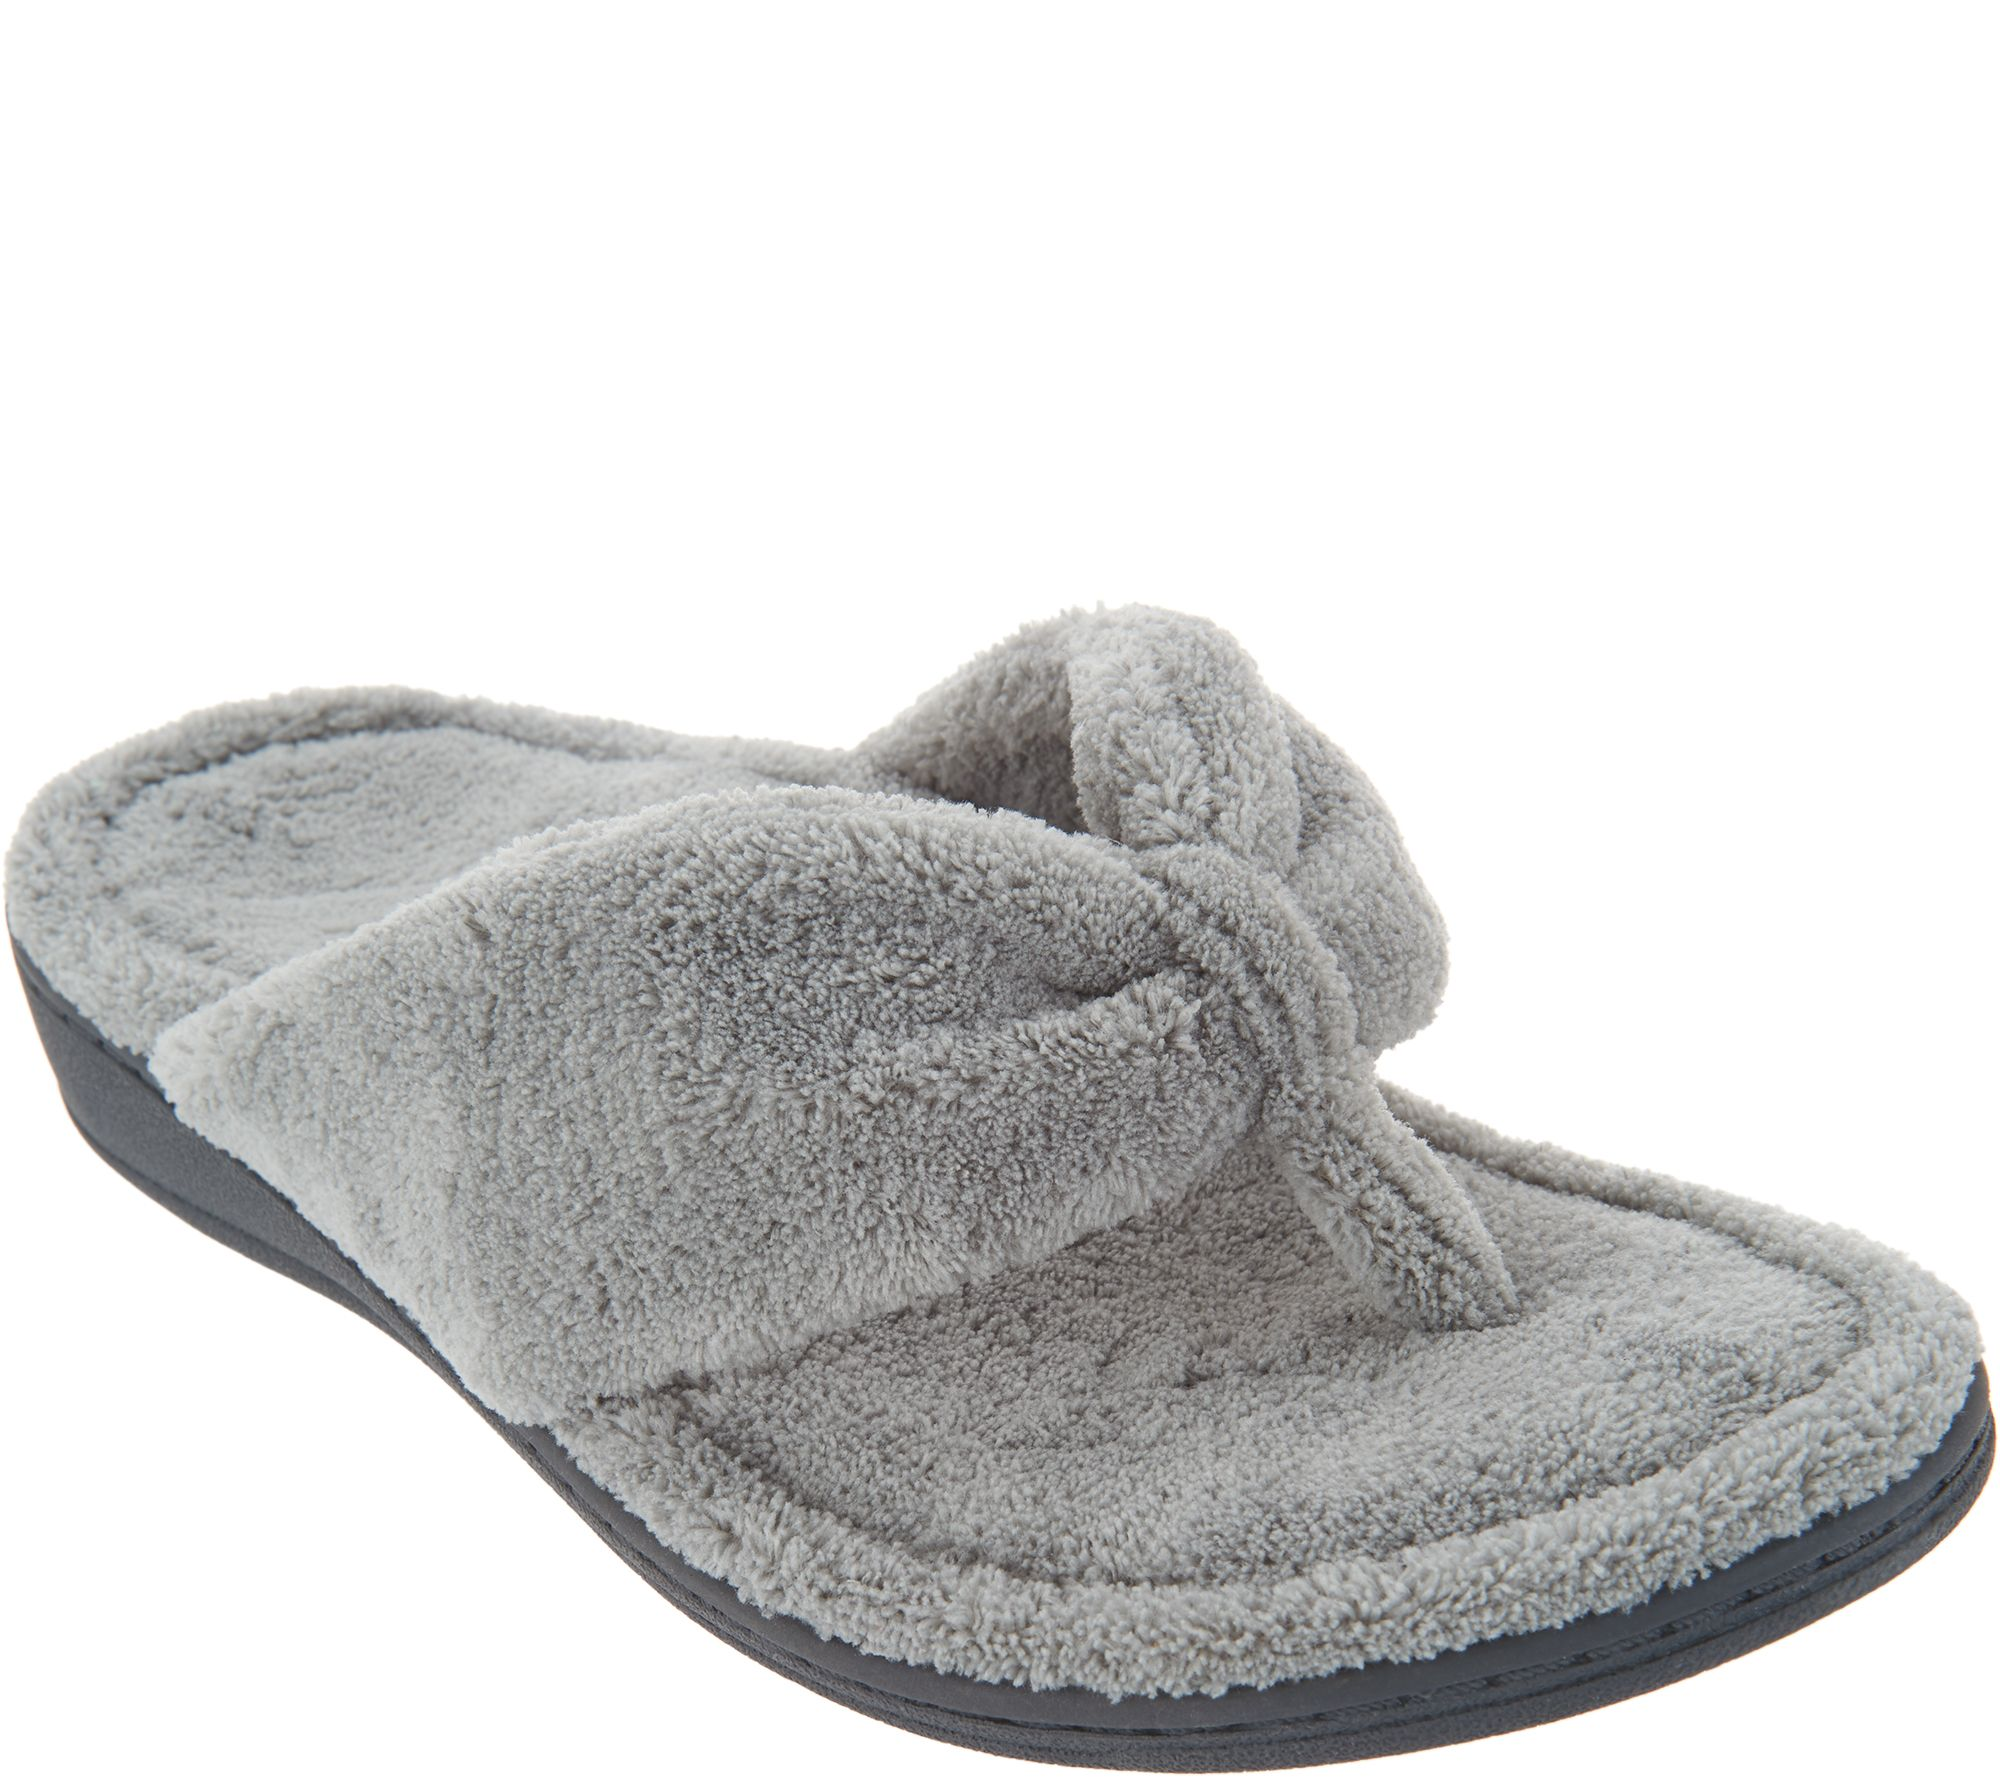 Vionic Terry Thong Slippers - Gracie outlet geniue stockist clearance best place ODeU3dIU6r